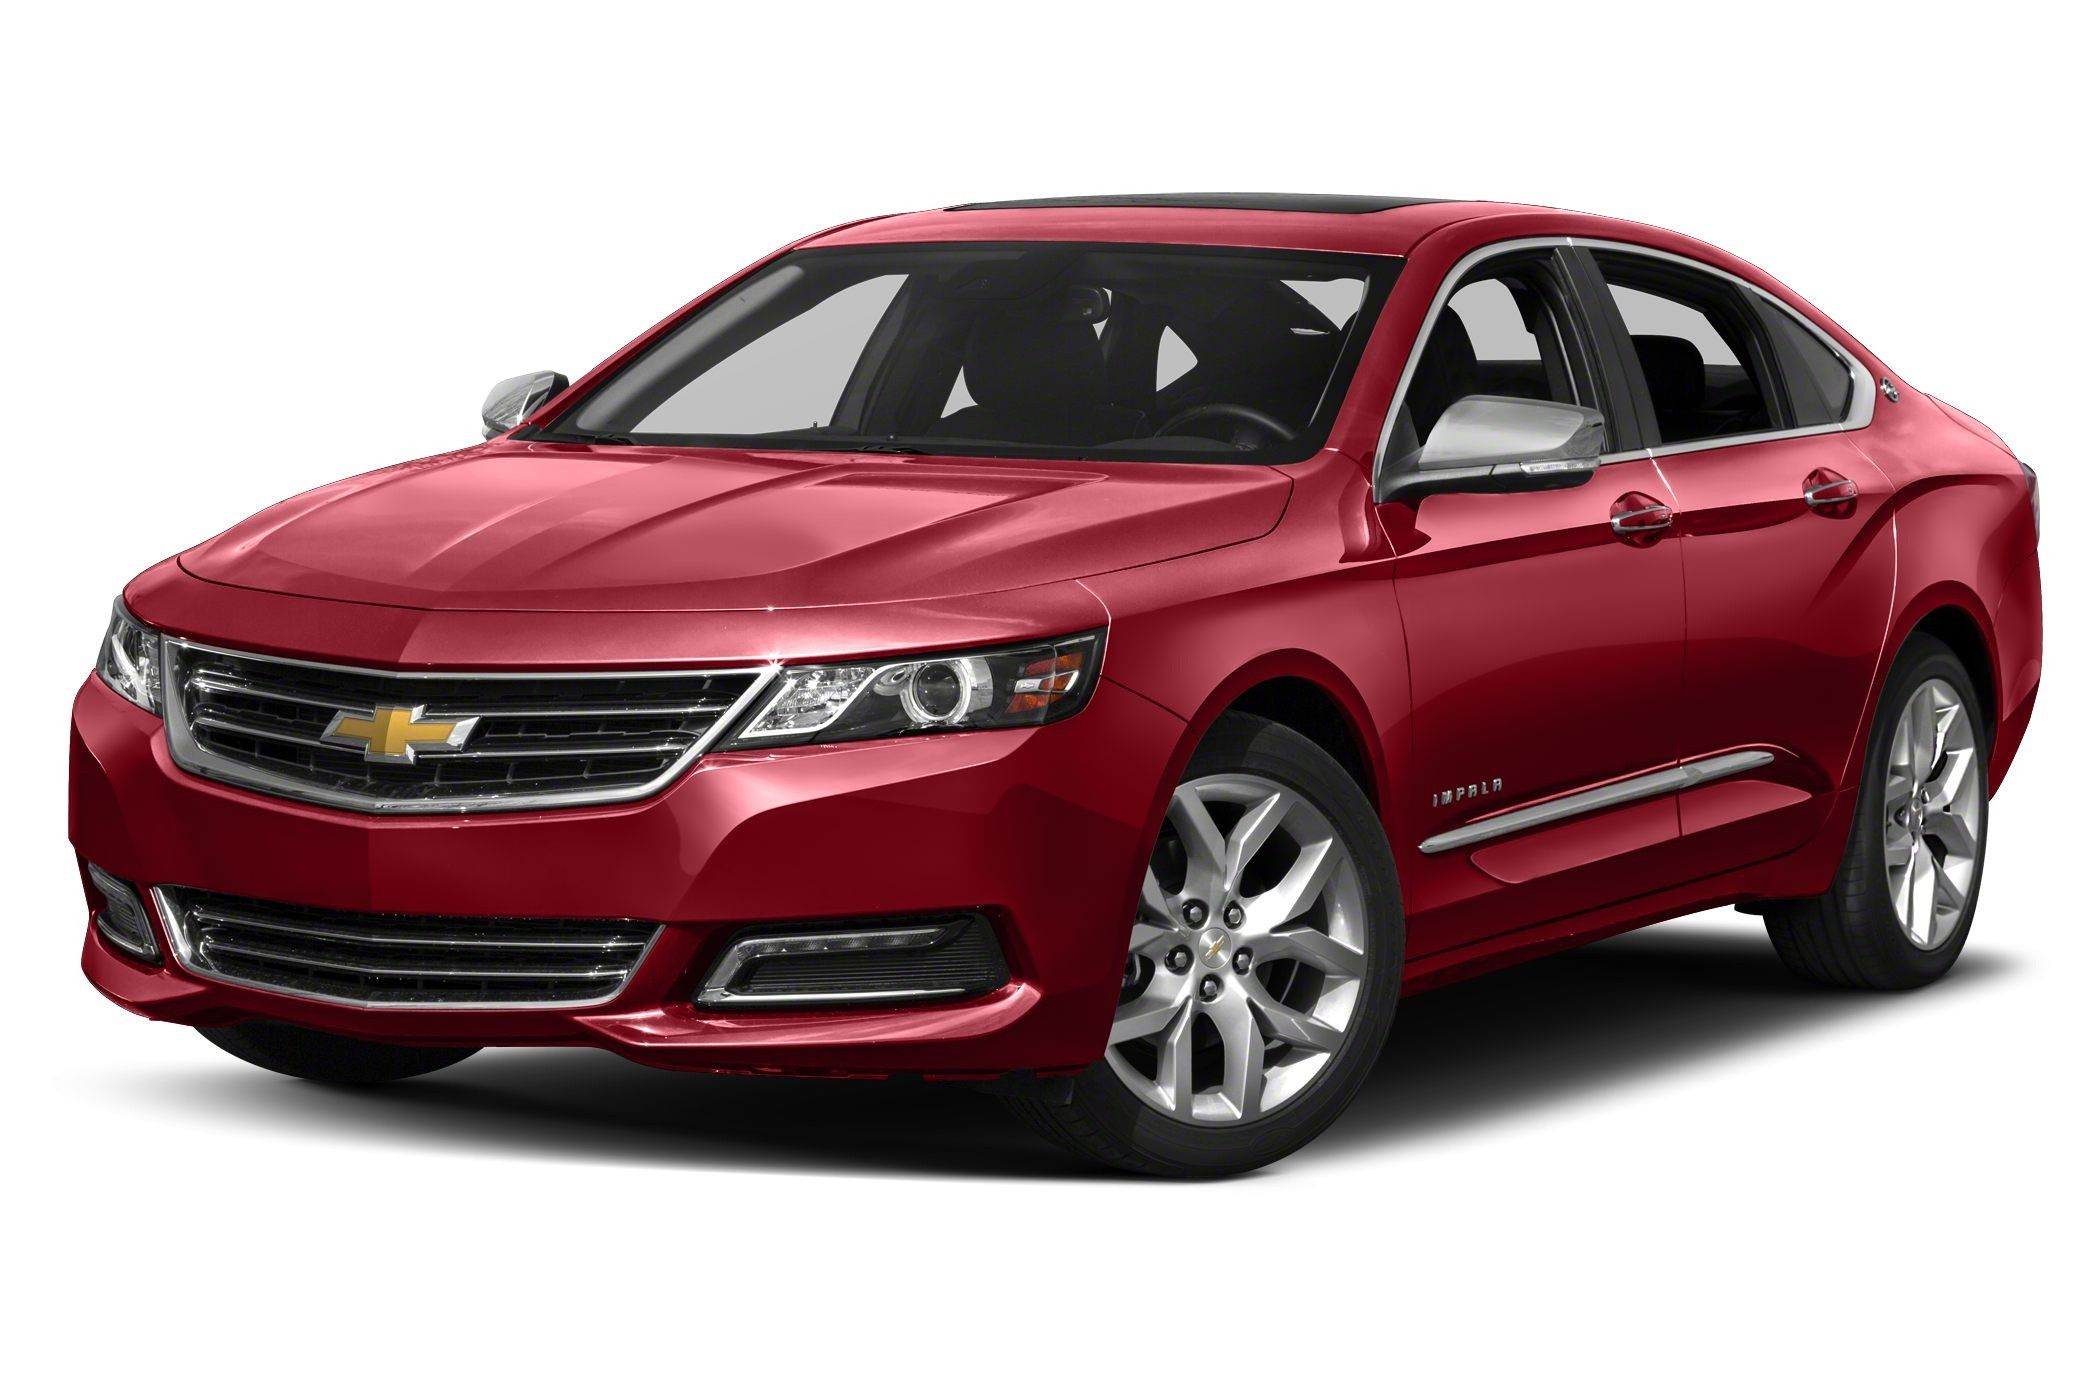 19 Best 2020 Chevy Impala Ss Ltz Coupe First Drive